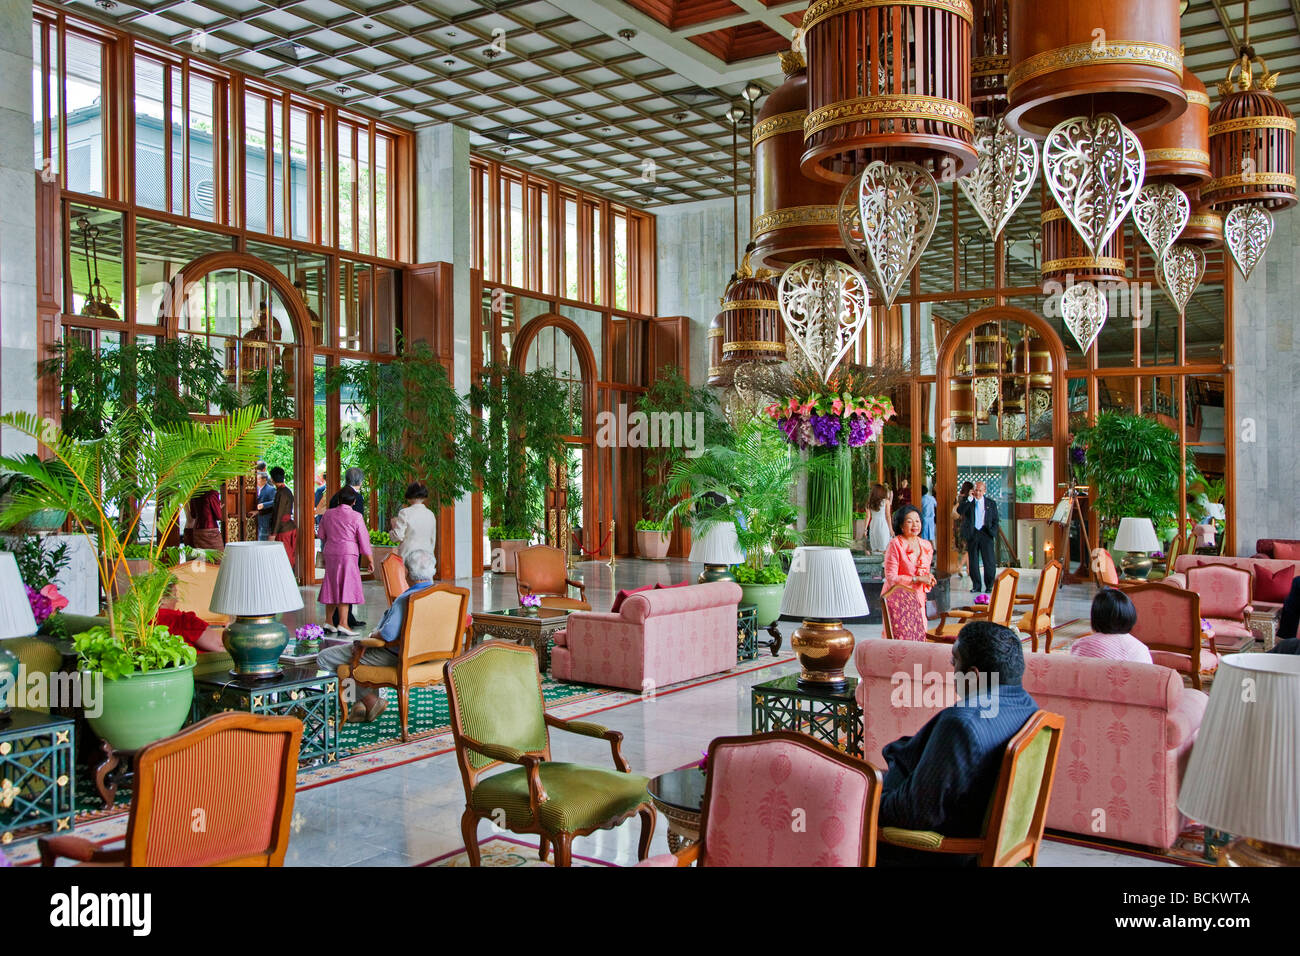 Thailand. The elegant lobby of the famous Mandarin-Oriental Hotel situated on the Chao Phraya River. - Stock Image